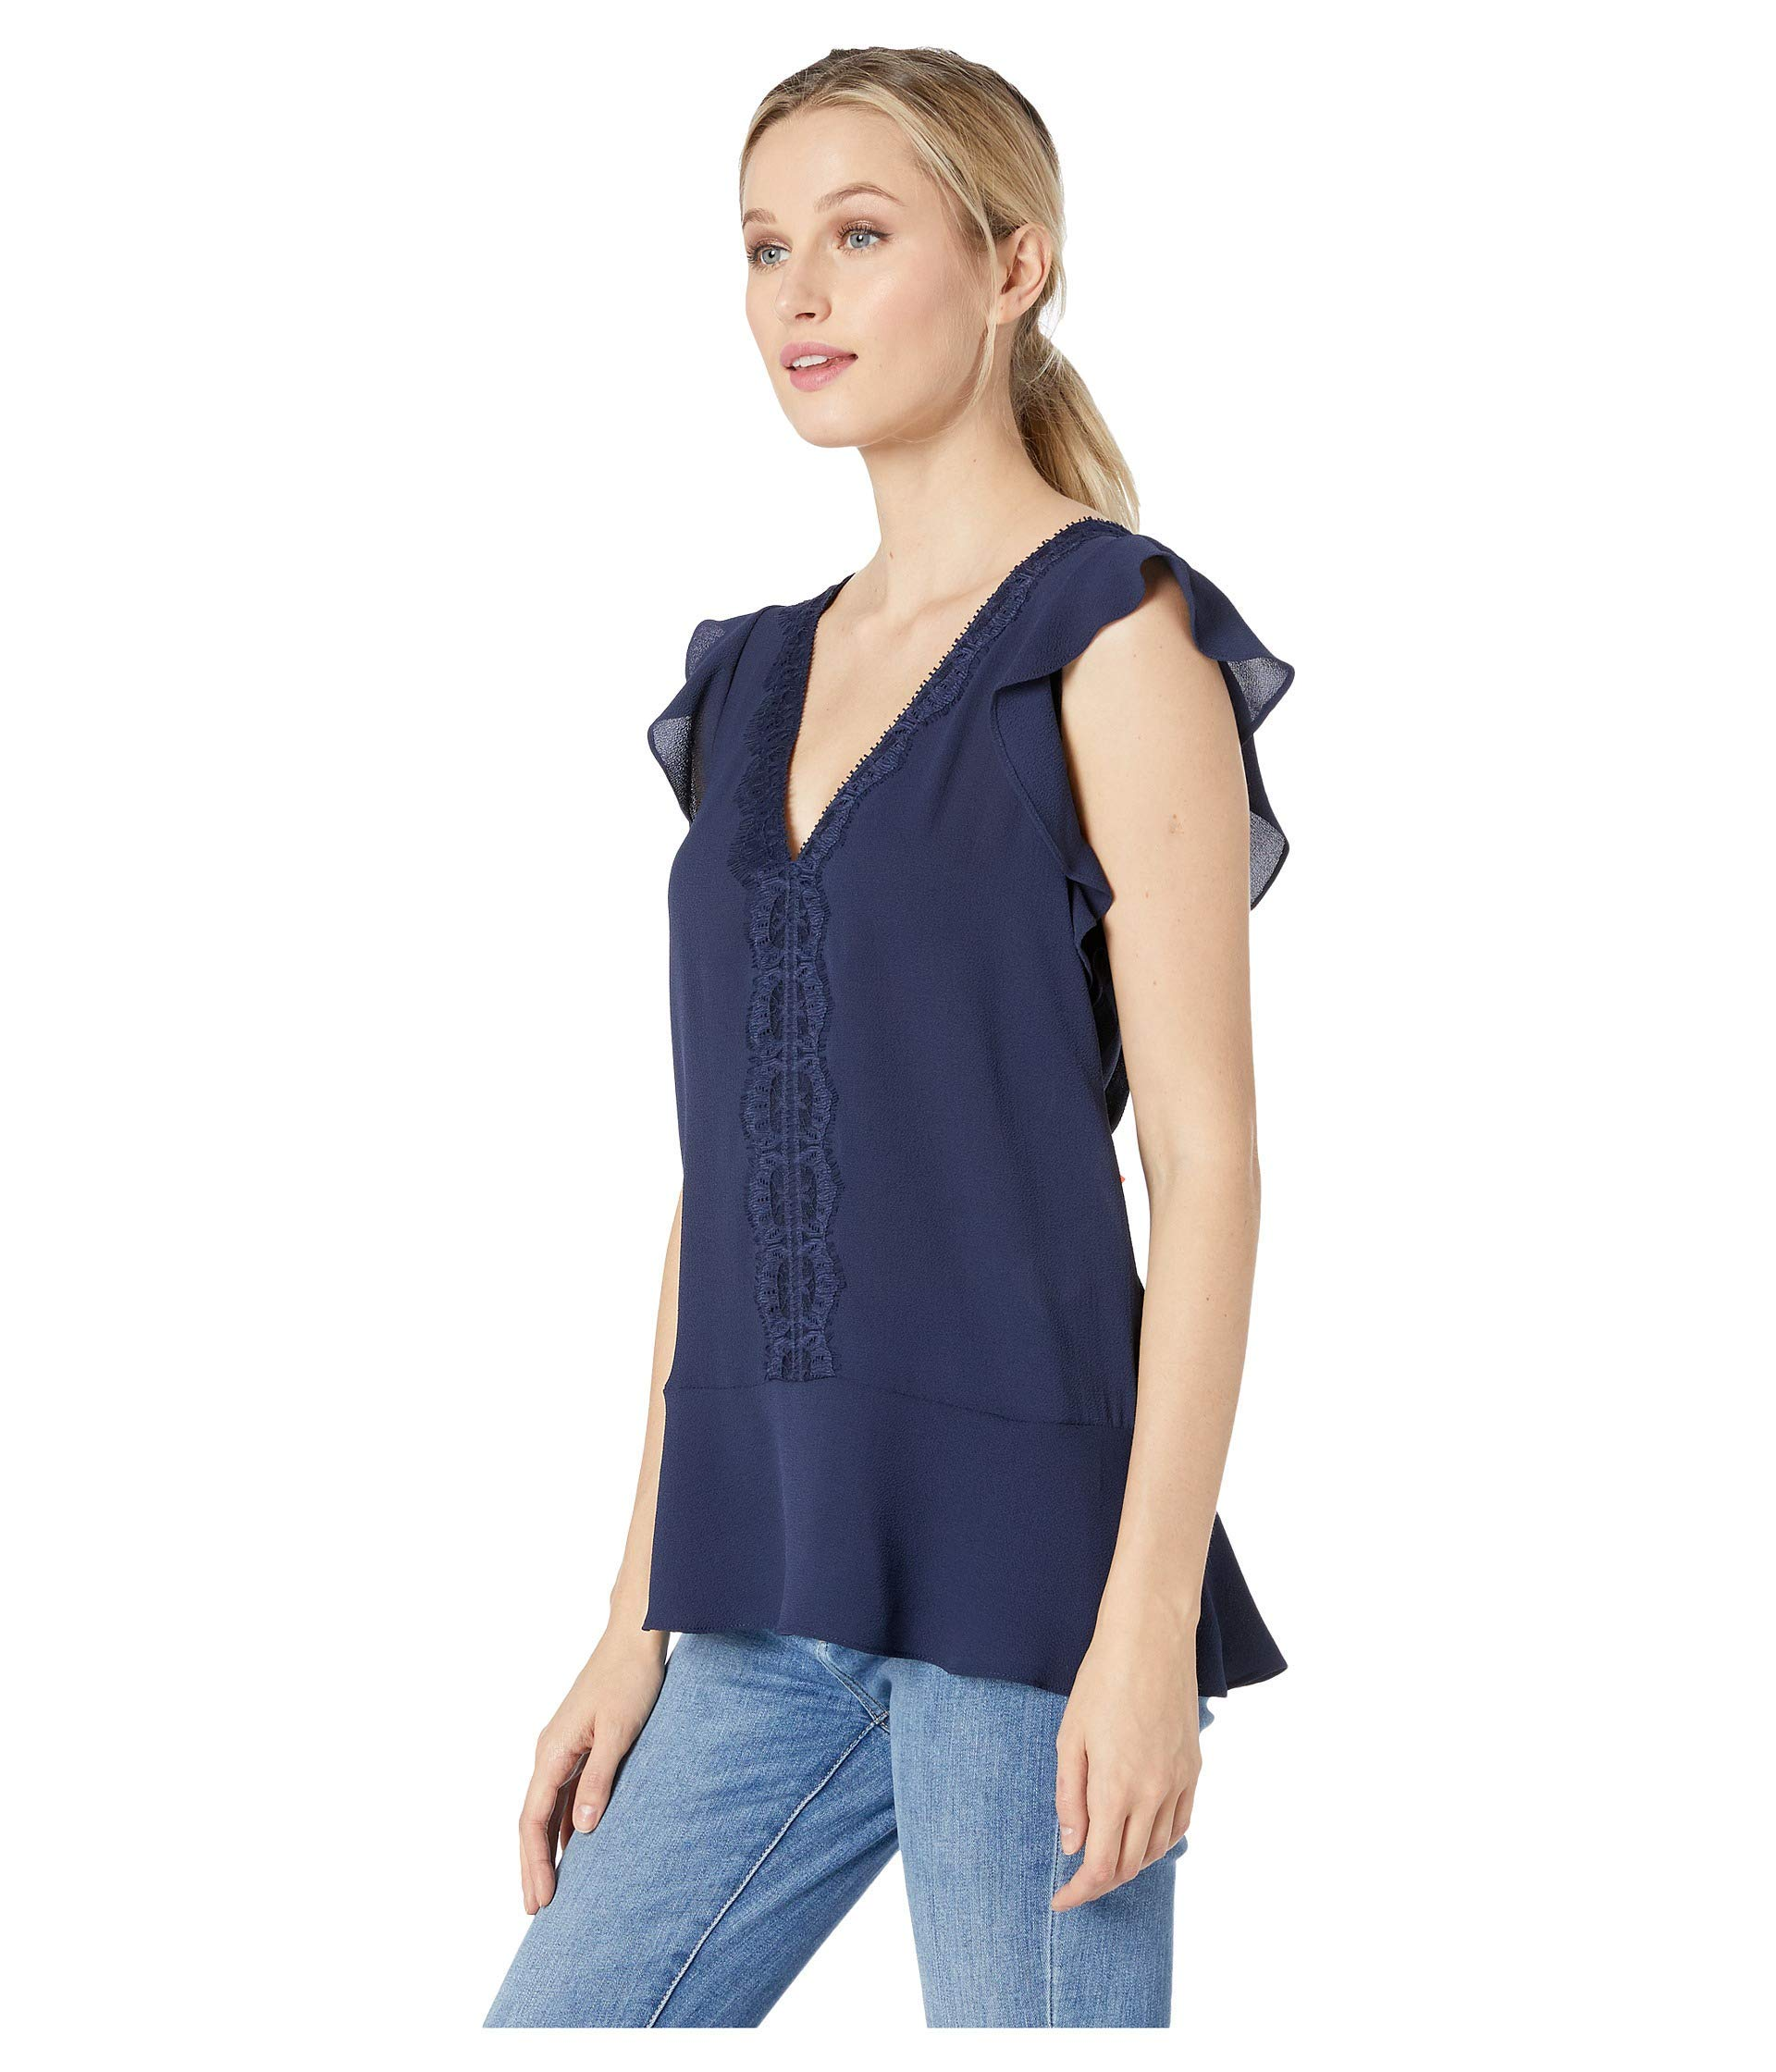 Blooming Jelly Womens Chiffon Lace Top V Neck Tops Ruffle Sleeve T Shirt Tee Shirts Blue